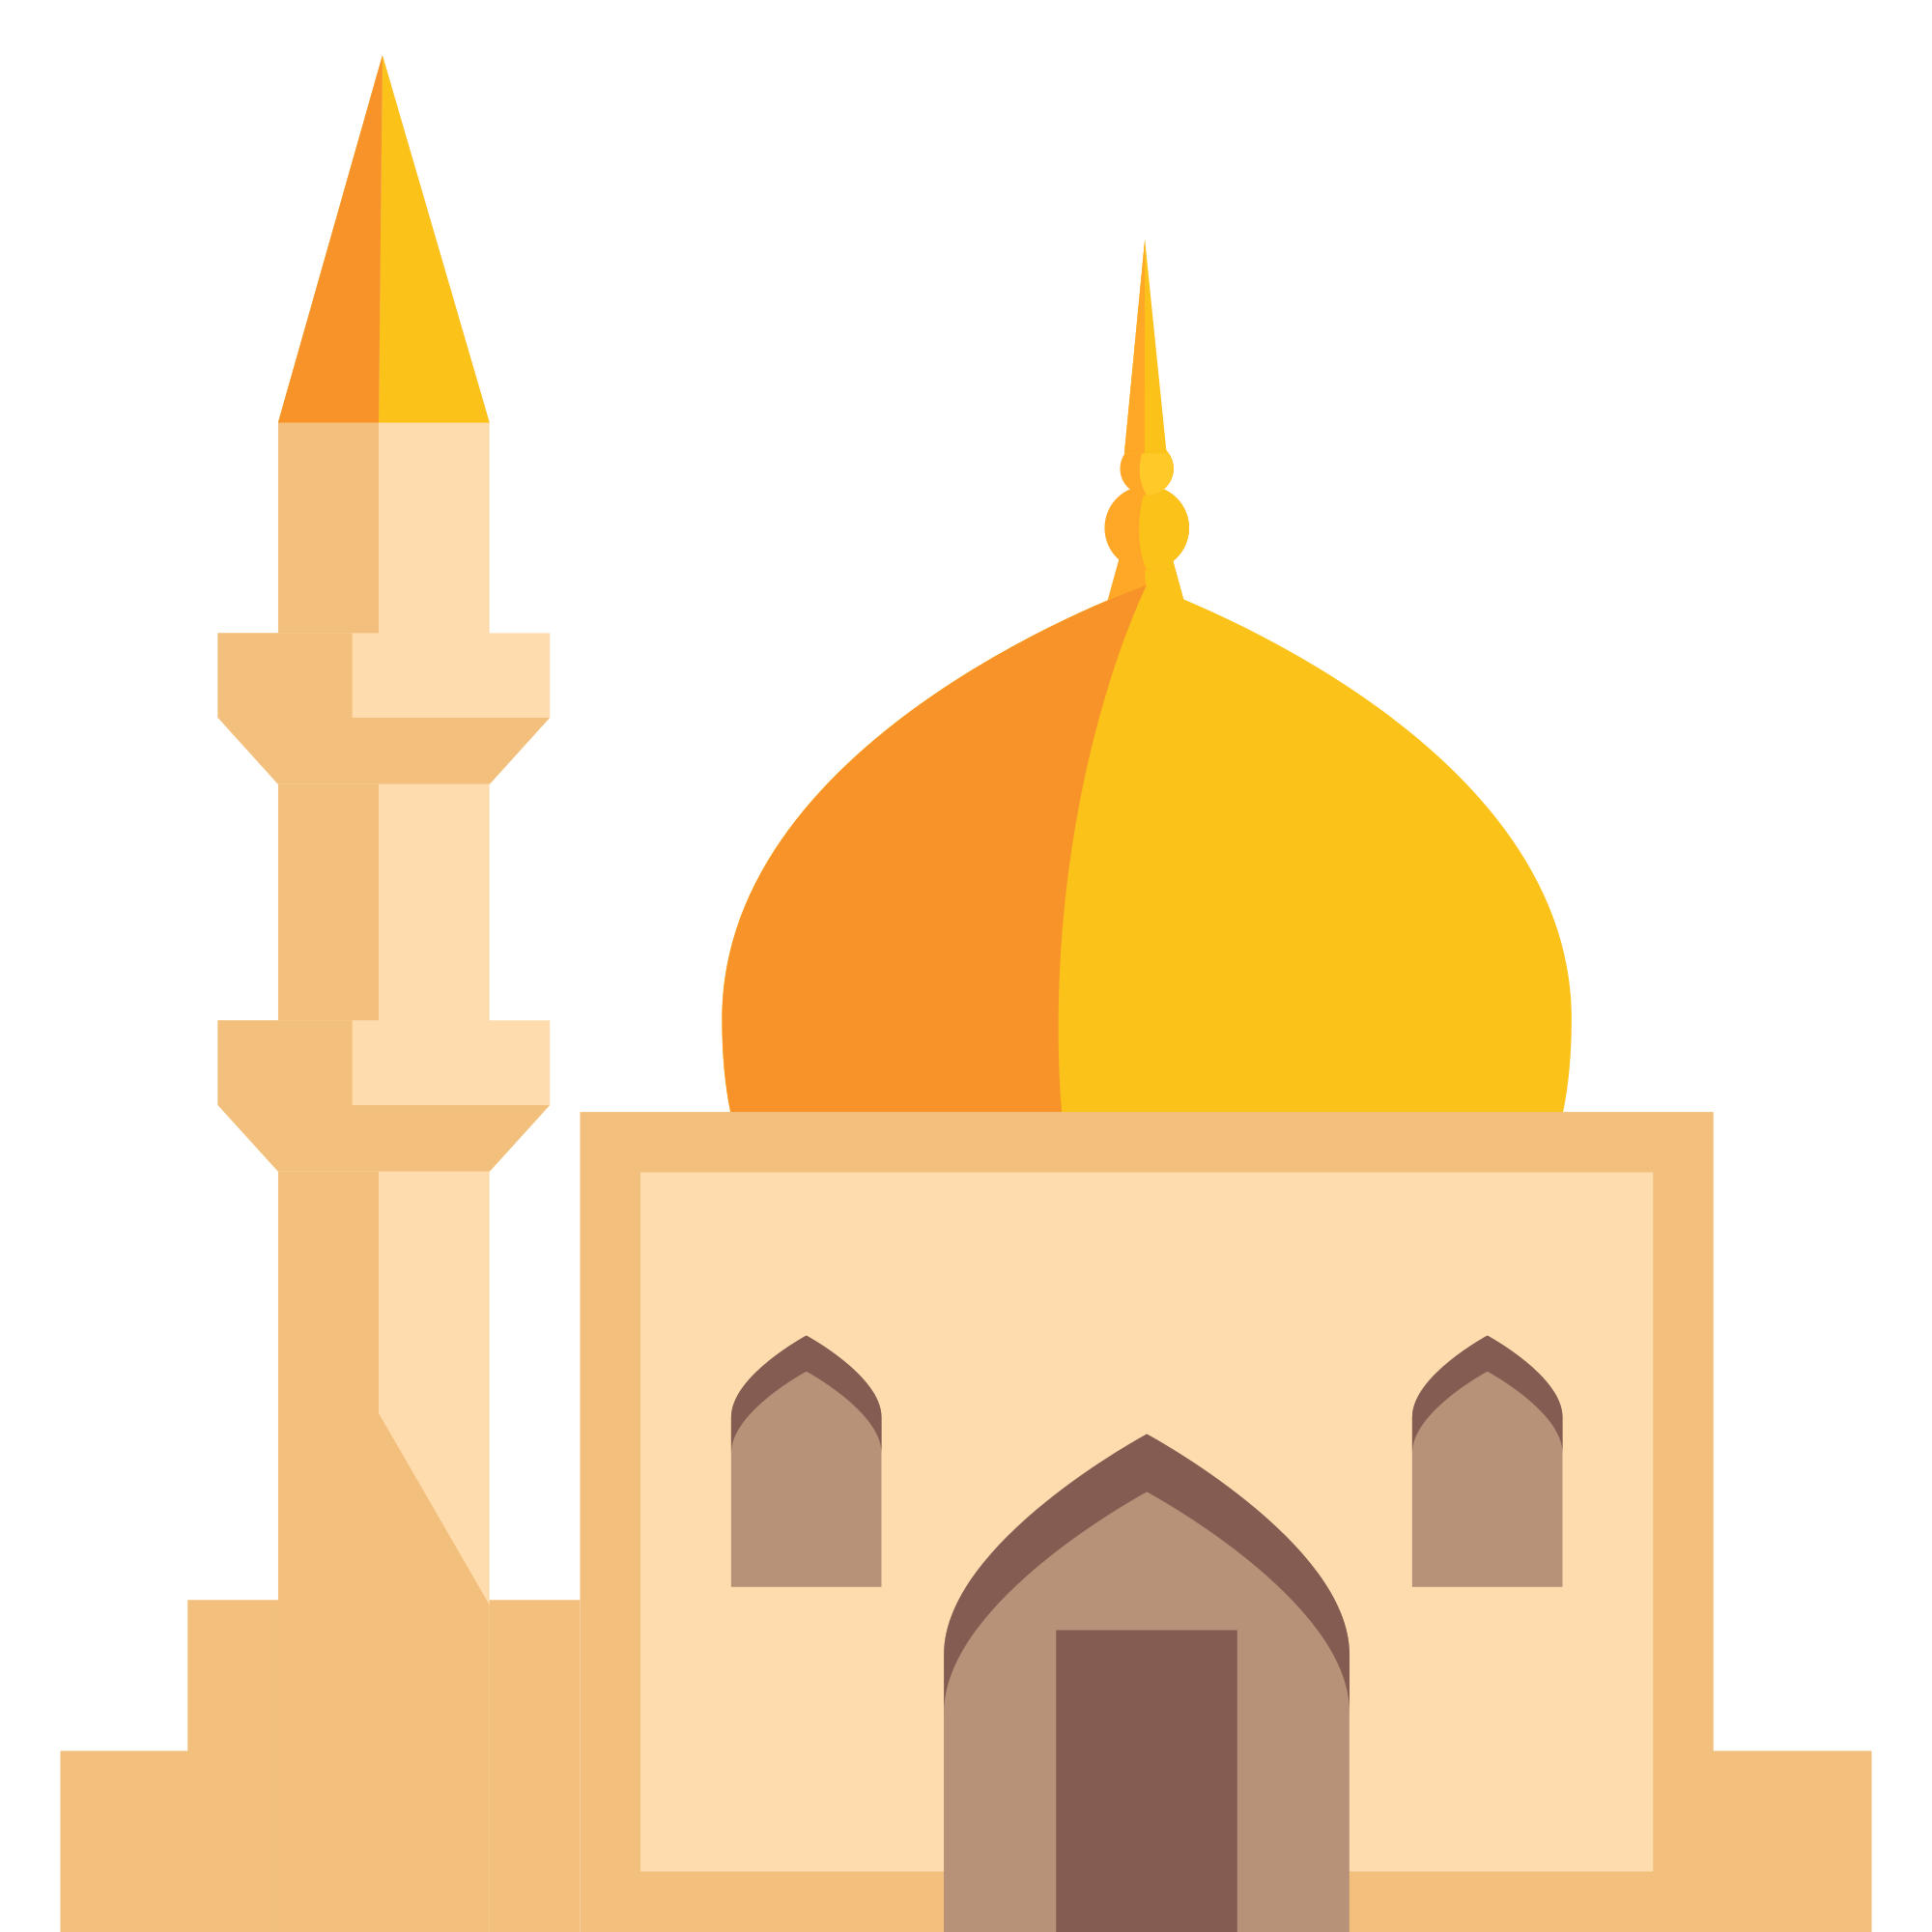 jpg free download Mosque clipart. Png images free download